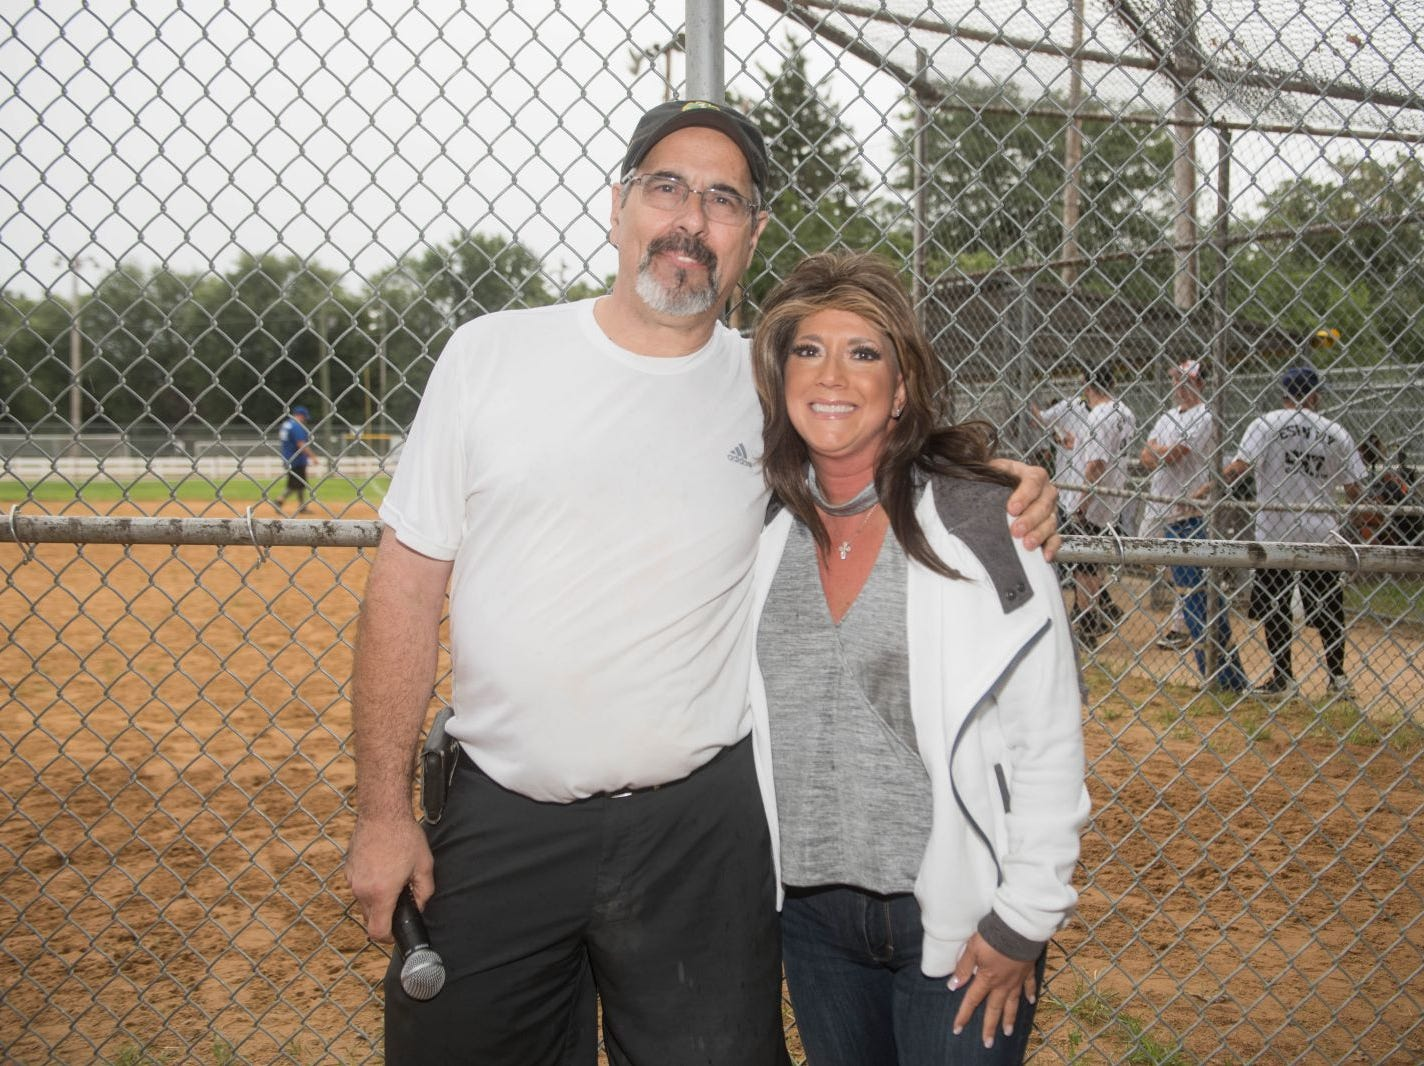 Bob Gonnello and Annamarie Sasso. Mark A. Sasso Memorial Fund hosted its 10th annual Softball Fundraiser this past Saturday at Wagaraw Baseball Field in Hawthorne. Don La Greca was joined by many of his fellow ESPN personalities and celebrity guests to play against the winning ALRC team from the round robin tournament that took place throughout the day. 09/08/2018